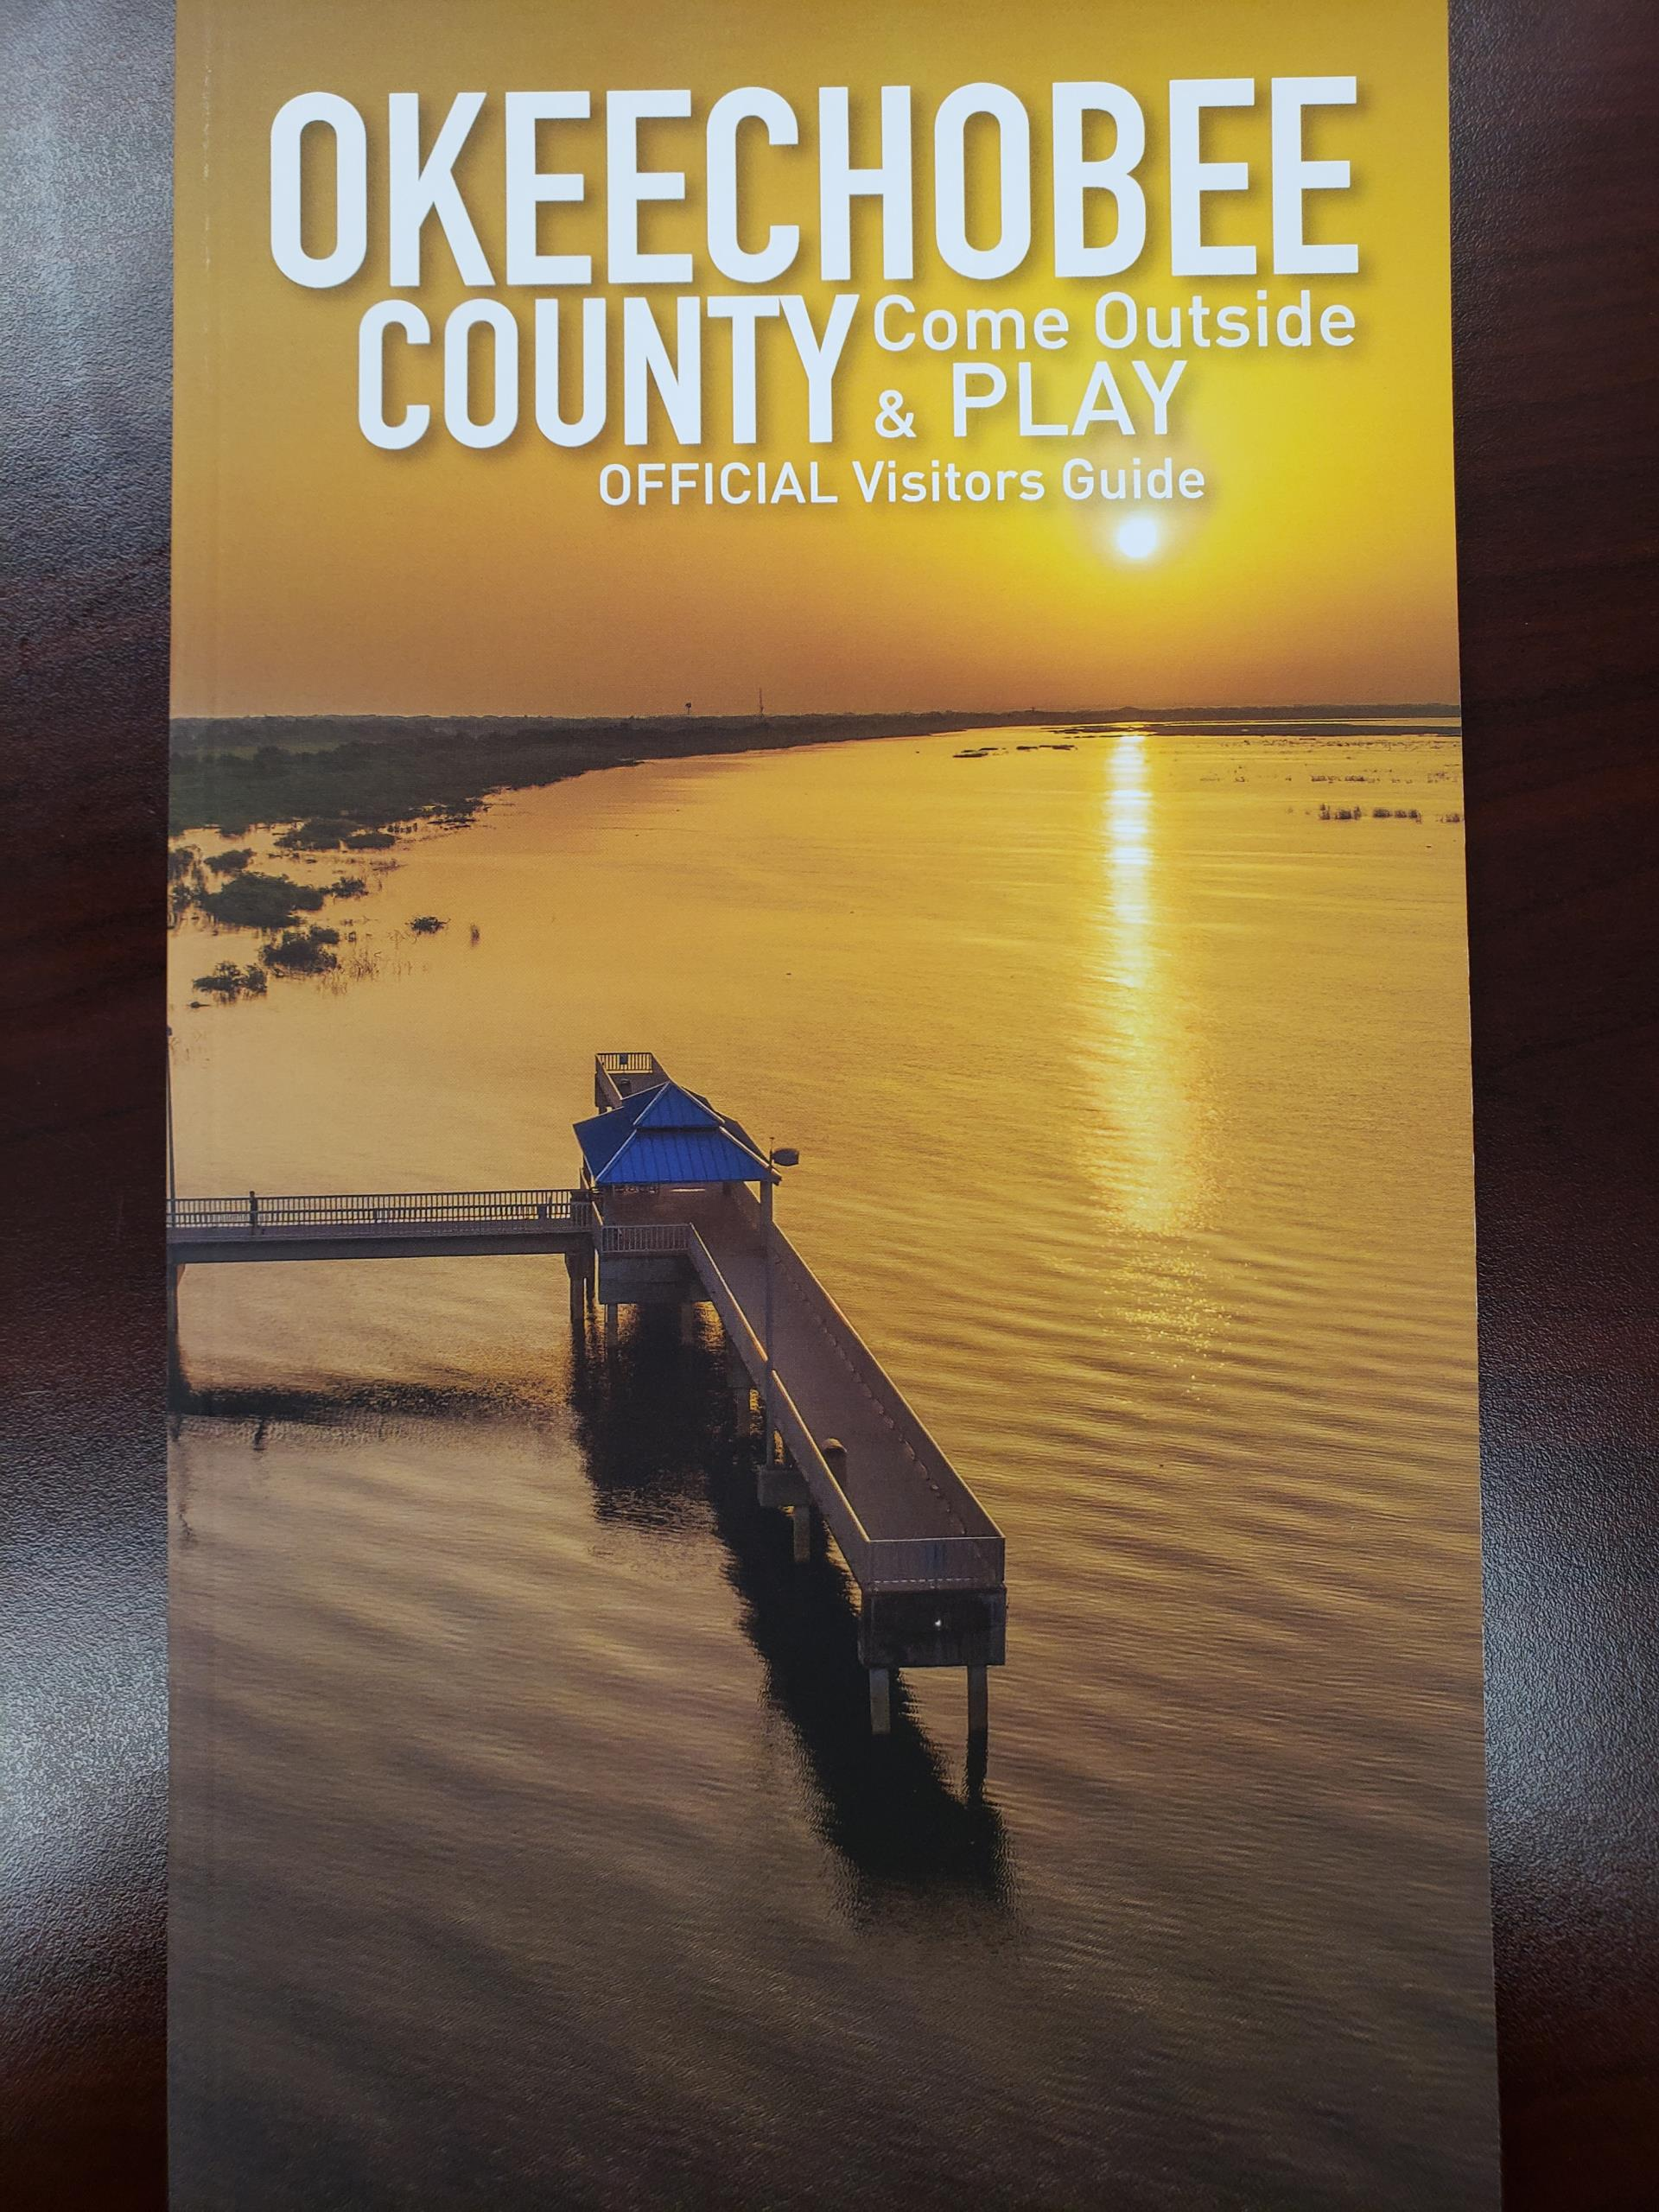 Okeechobee County Official Visitor Guide Come Outside and Play